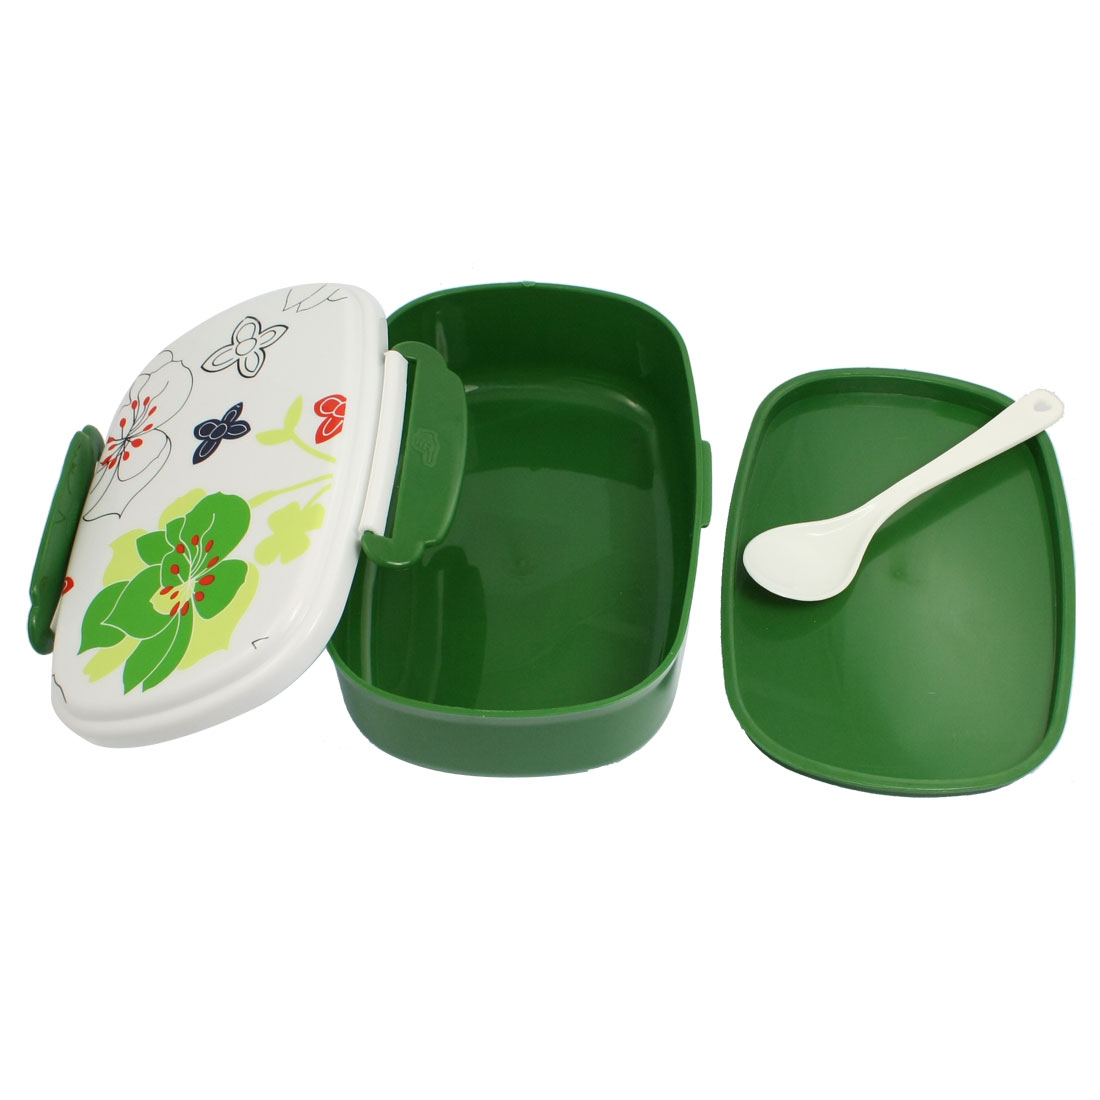 Double Layer Food Holder Green Plastic Lunch Box + Spoon